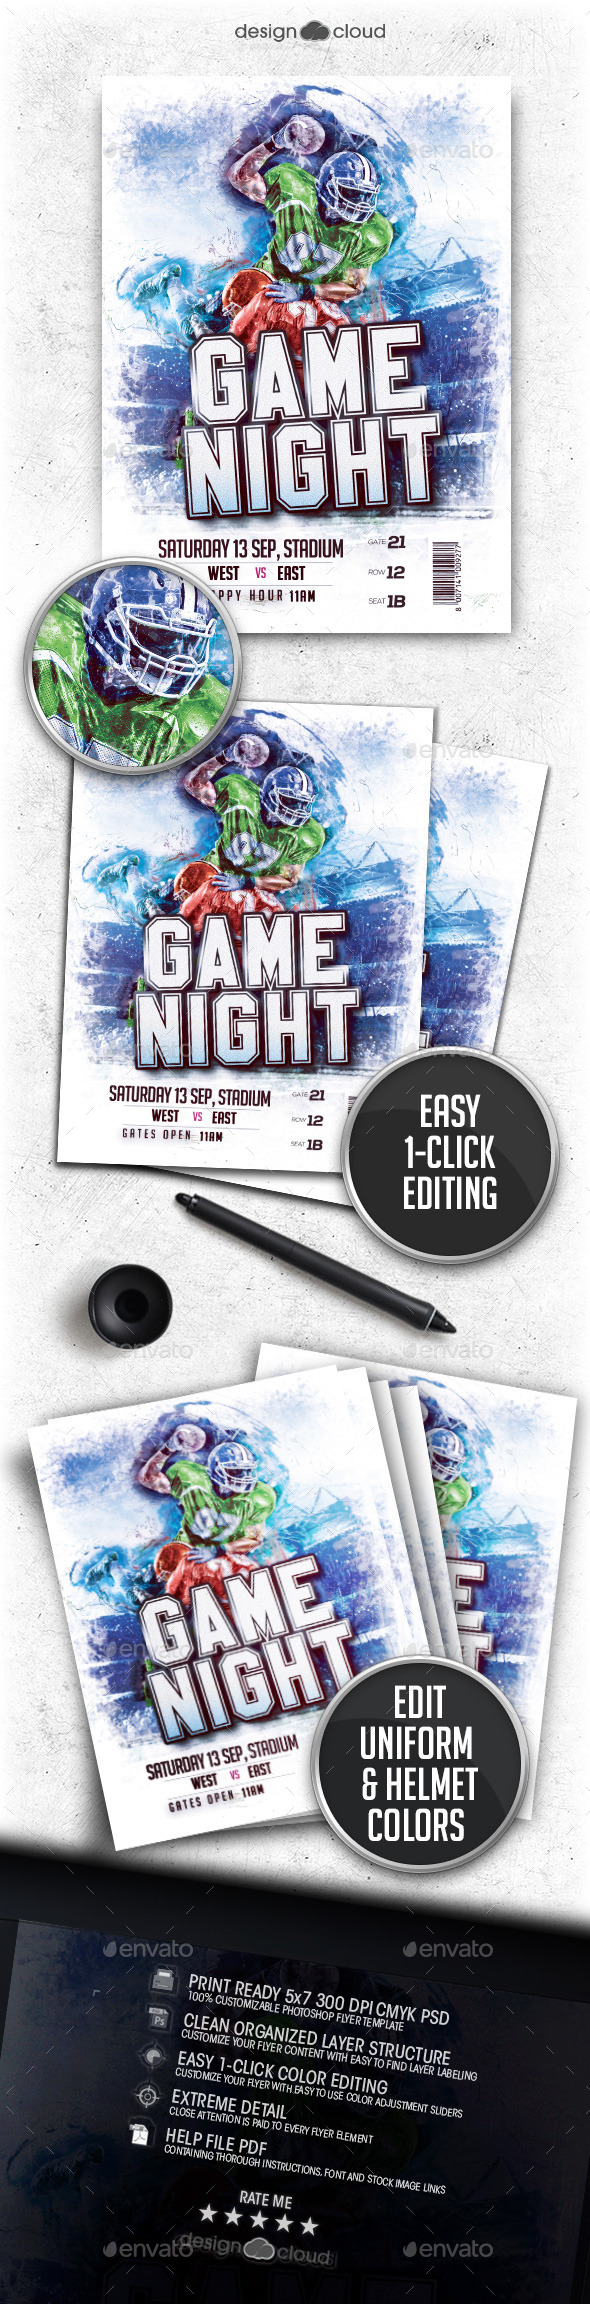 Football Game Night Flyer Template Vol. 3 - Sports Events